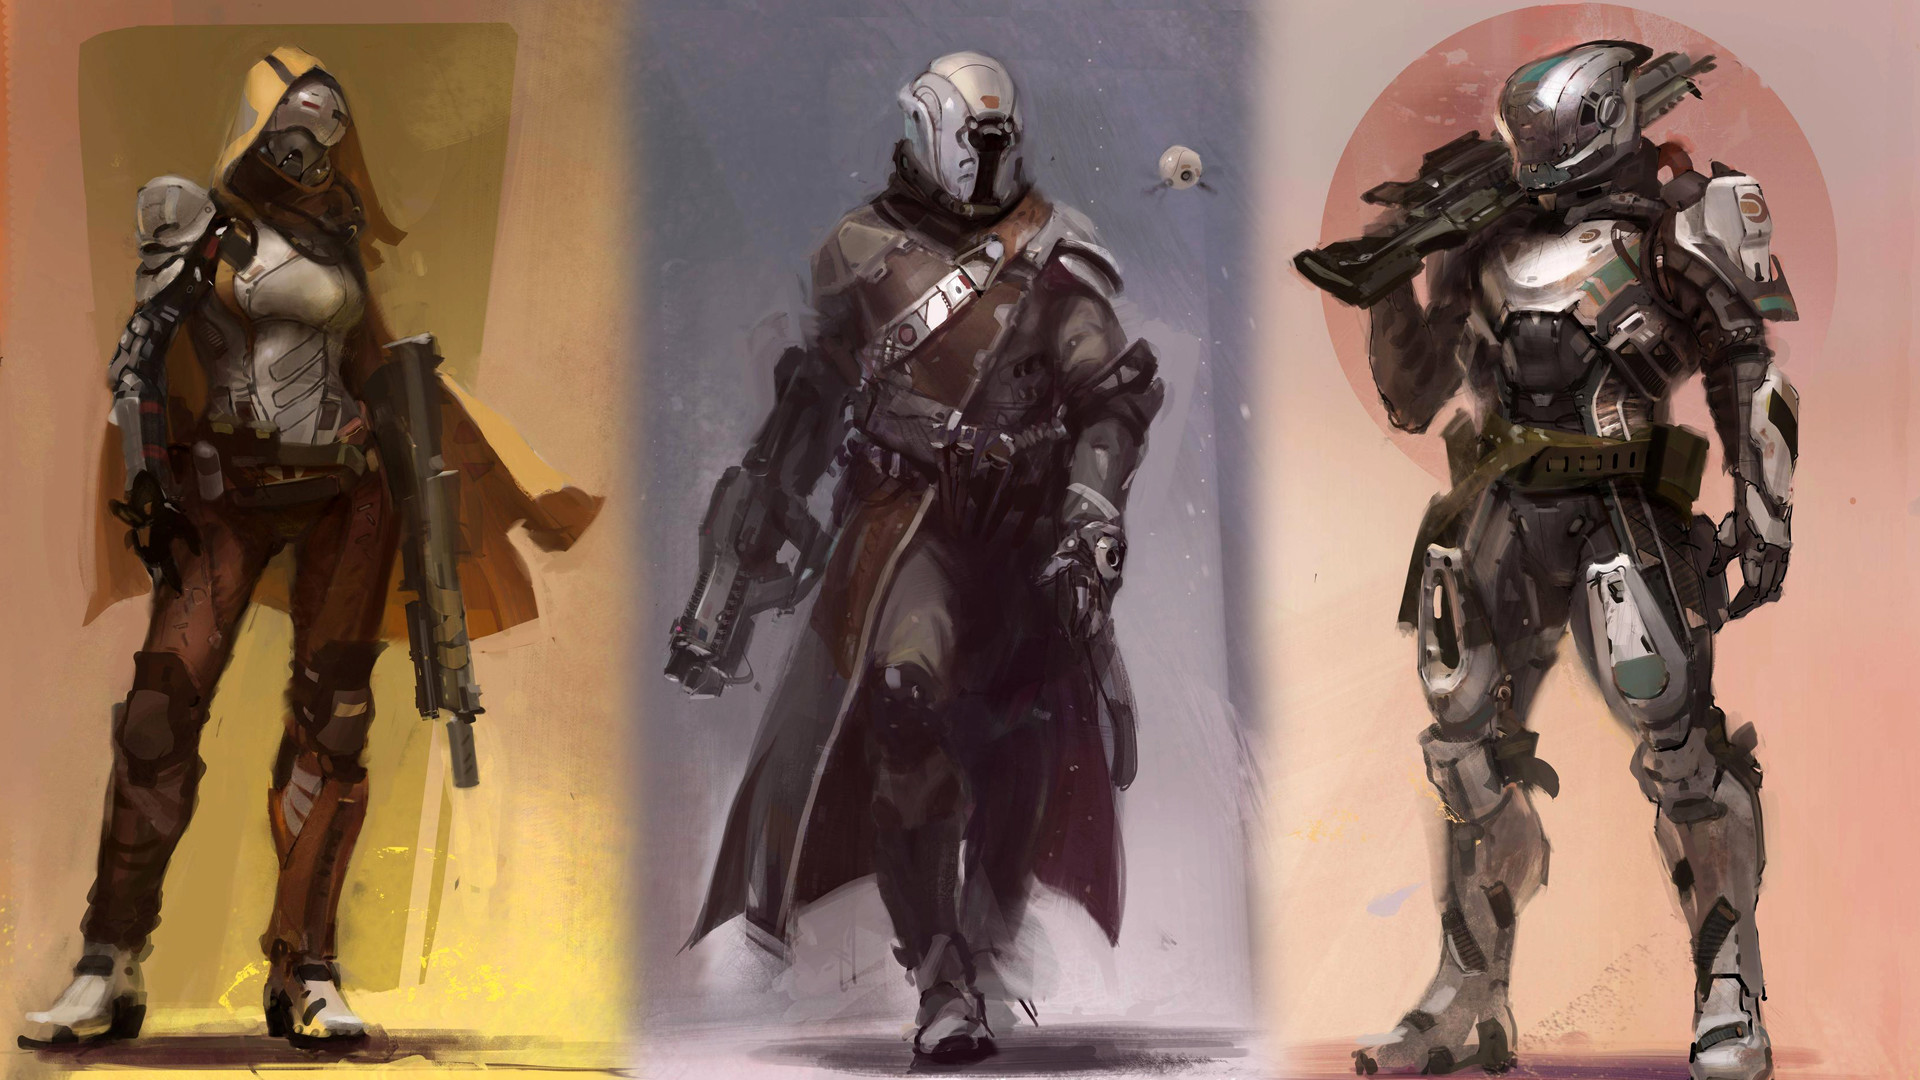 1920x1080 Destiny 2 Hunter Wallpaper Inspirational Awesome New Wallpapers